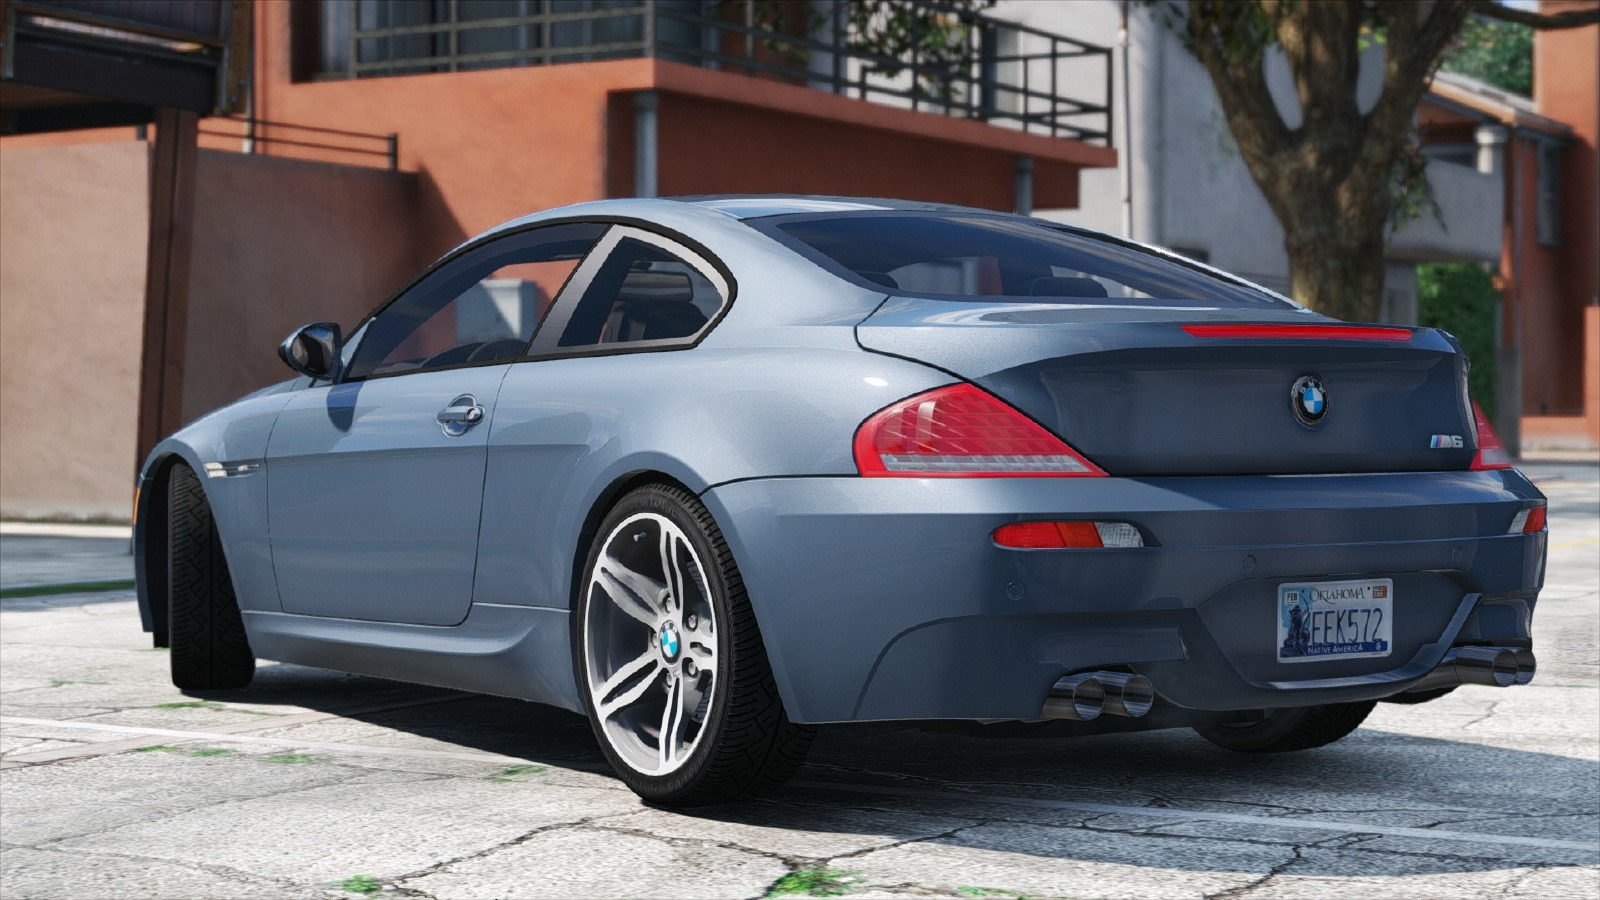 bmw m6 e63 tunable vehicules pour gta v sur gta modding. Black Bedroom Furniture Sets. Home Design Ideas